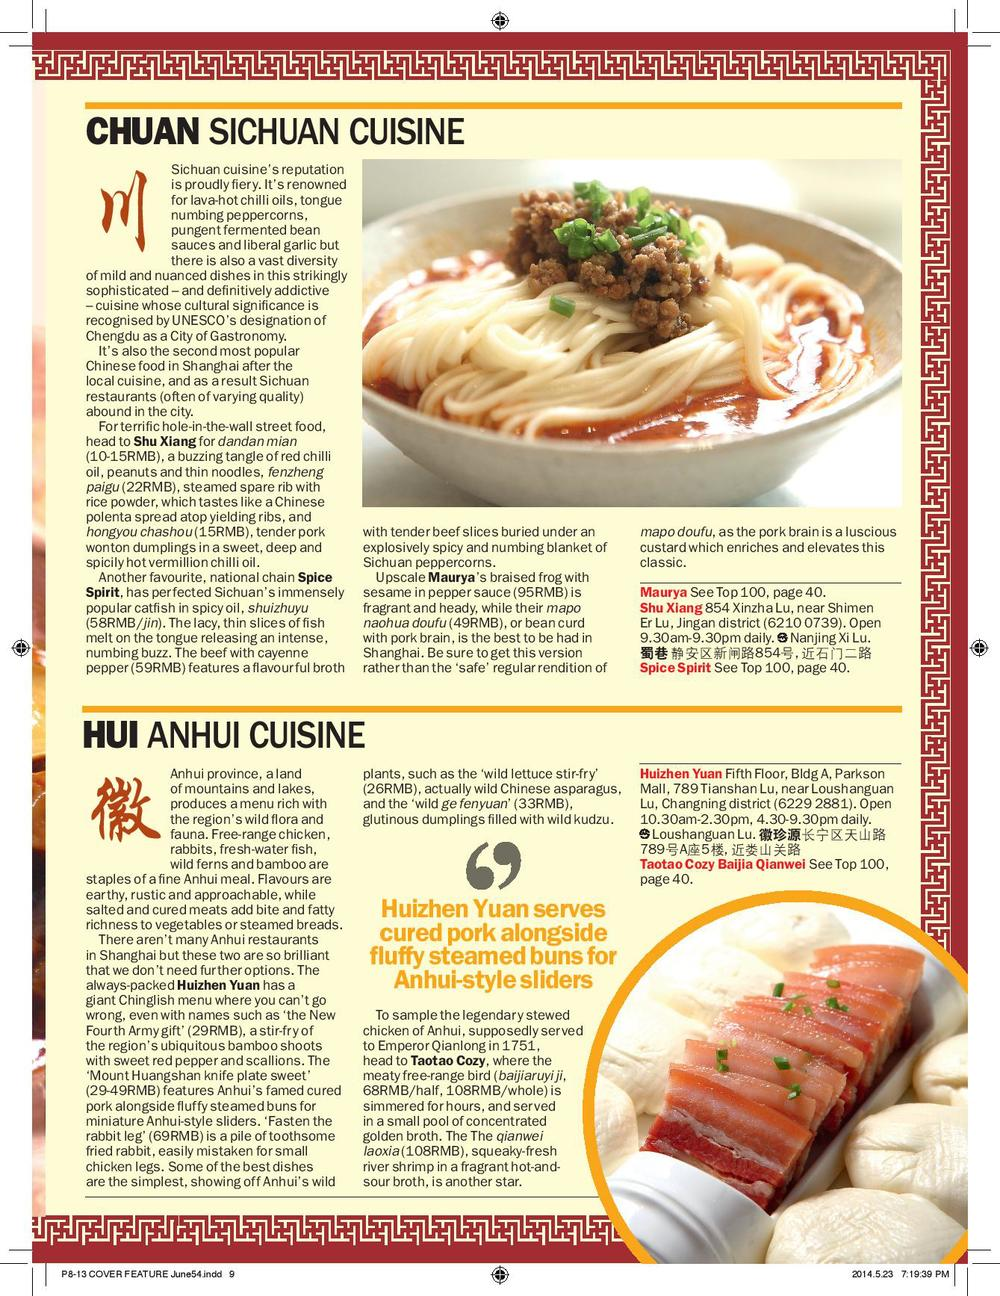 P8-13 COVER FEATURE Eight Great Cuisines June 2014-page-002.jpg